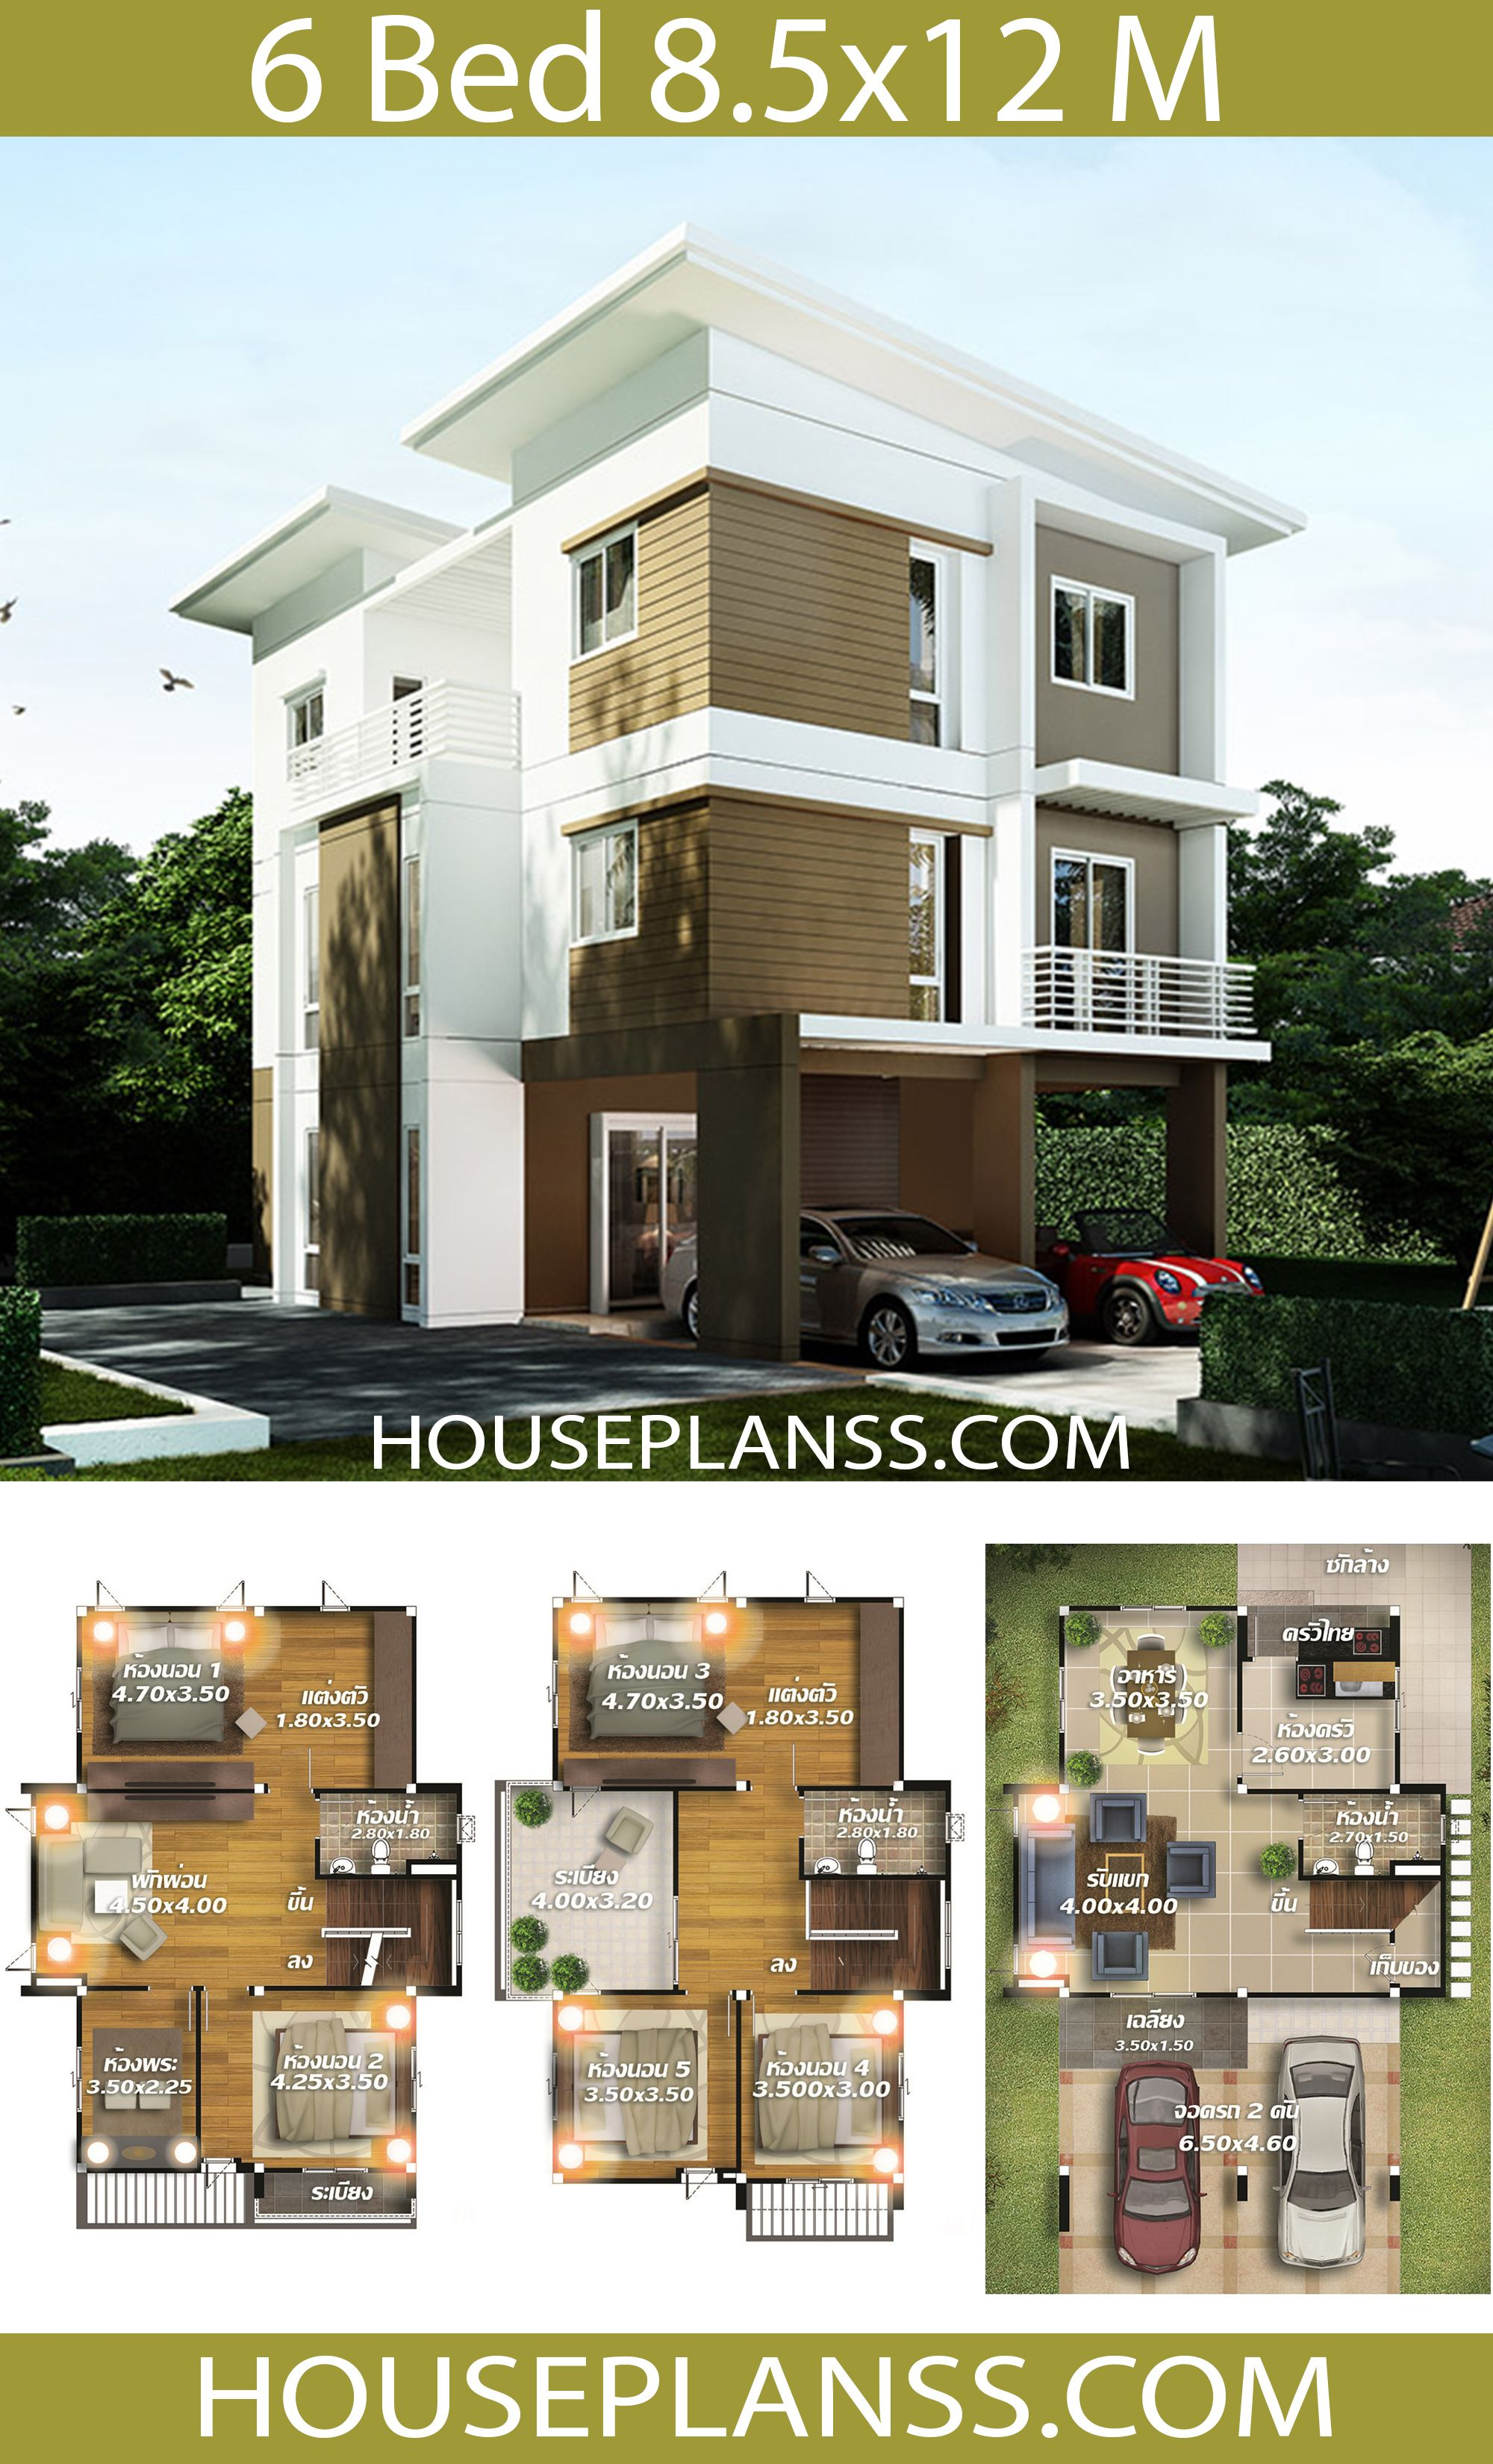 House Plans Design Idea 8 5x12 With 6 Bedrooms House Plans 3d Modern Style House Plans My House Plans 6 Bedroom House Plans